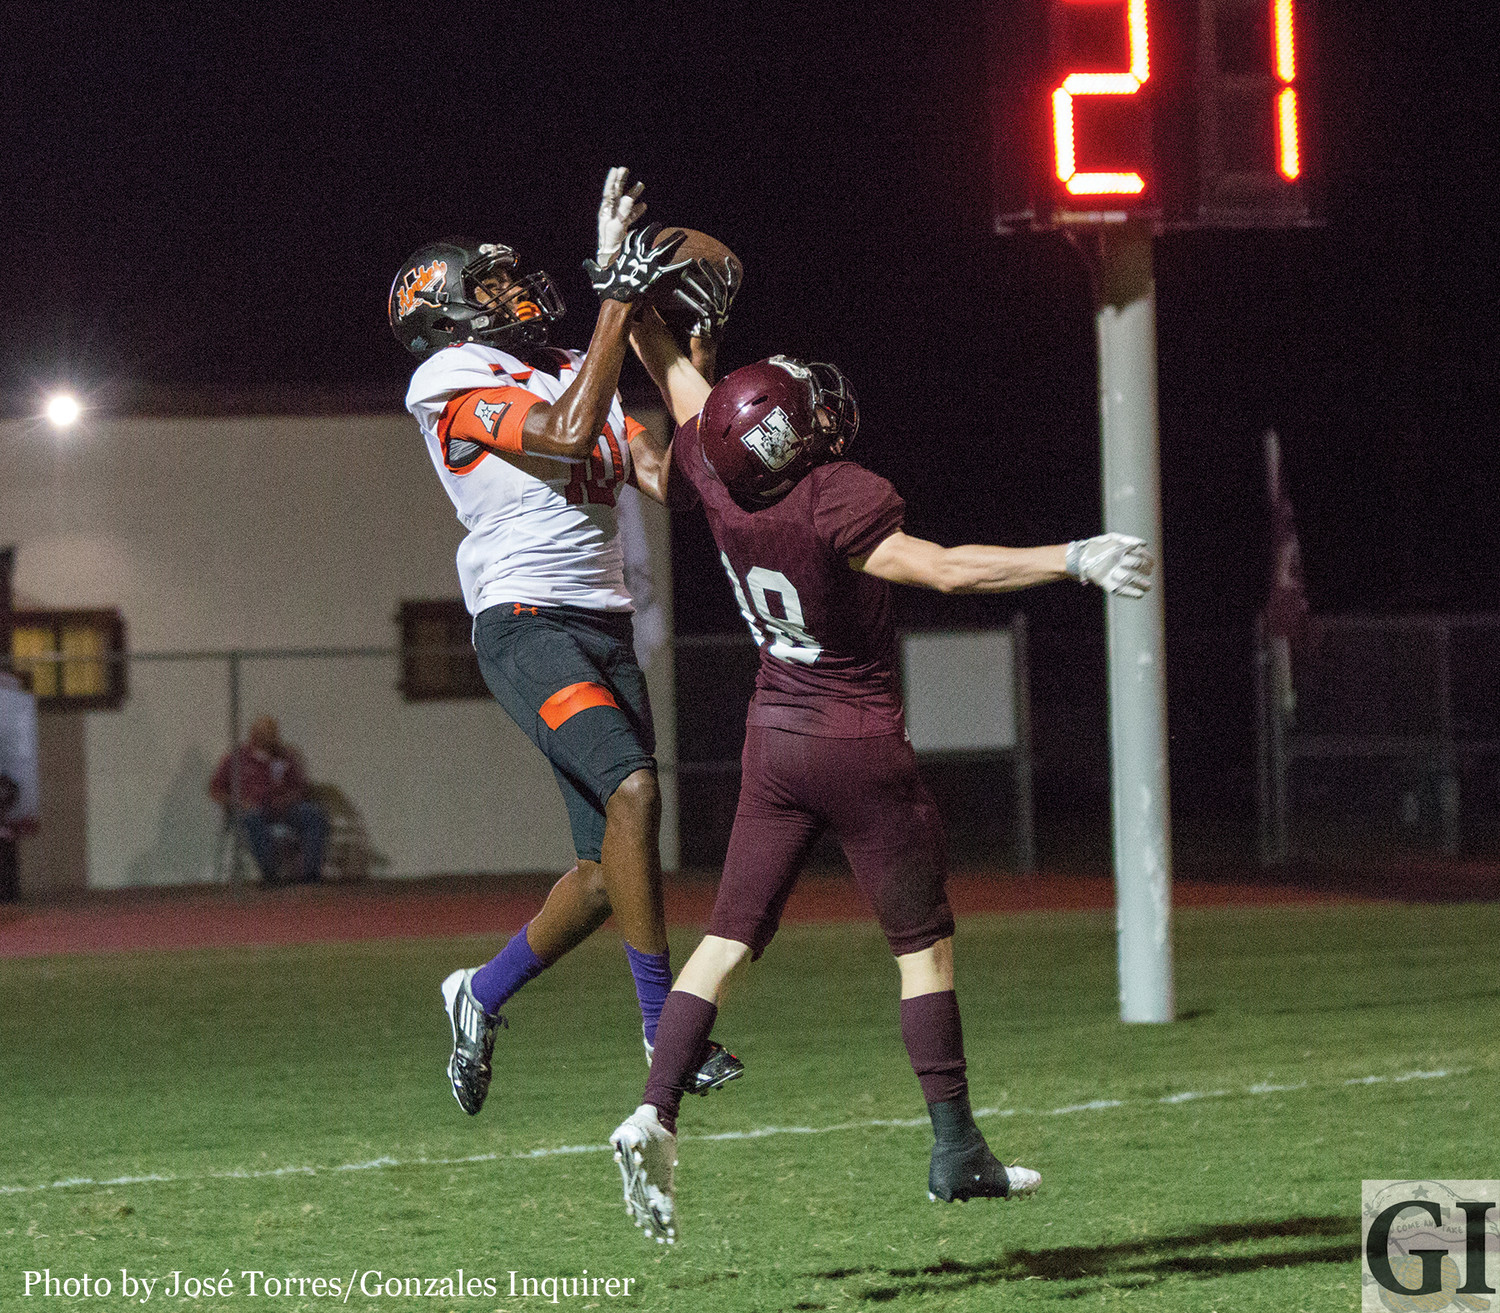 Trevion McNeil (10) snags a touchdown pass in the end zone during the Apaches' 34-20 win.